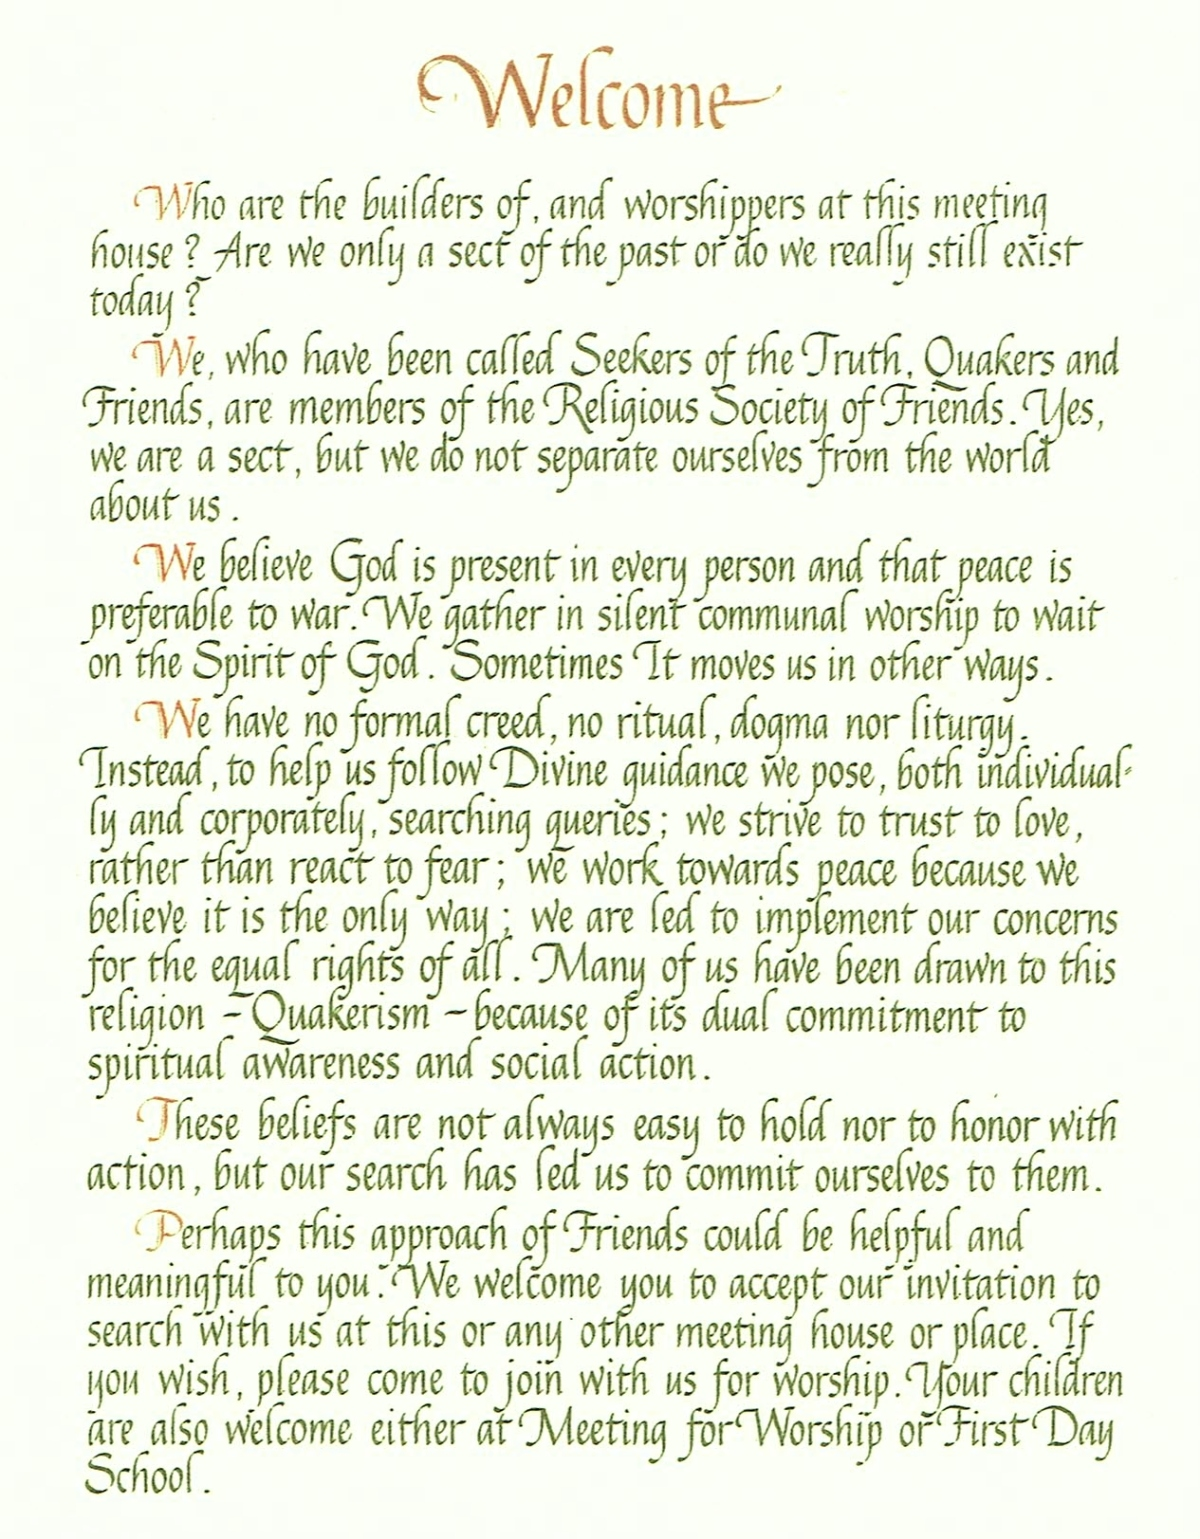 Welcome. [new paragraph] Who are the builders of, and worshippers at this meeting house? Are we only a sect of the past or do we really still exist today? [new paragraph] We, who have been called Seekers of the Truth, Quakers and Friends, are members of the Religious Society of Friends. Yes, we are a sect, but we do not separate ourselves from the world about us. [new paragraph] We believe God is present in every person and that peace is preferable to war. We gather in silent communal worship to wait on the Spirit of God. Sometimes It moves us in other ways. [new paragraph] We have no formal creed, no ritual, dogma nor liturgy. Instead, to help us follow Divine guidance we pose, both individually and corporately, searching queries; we strive to trust to love, rather than to react to fear; we work towards peace because we believe it is the only way; we are led to implement our concerns for the equal rights of all. Many of us have been drawn to this religion -- Quakerism -- because of its dual commitment to spiritual awareness and social action. [new paragraph] These beliefs are not always easy to hold nor to honor with action, but our search has led us to commit ourselves to them. [new paragraph] Perhaps this approach of Friends could be helpful and meaningful to you. We welcome you to accept our invitation to search with us at this or any other meeting house or place. If you wish, please come to join with us for worship. Your children are also welcome either at Meeting for Worship or First Day School.